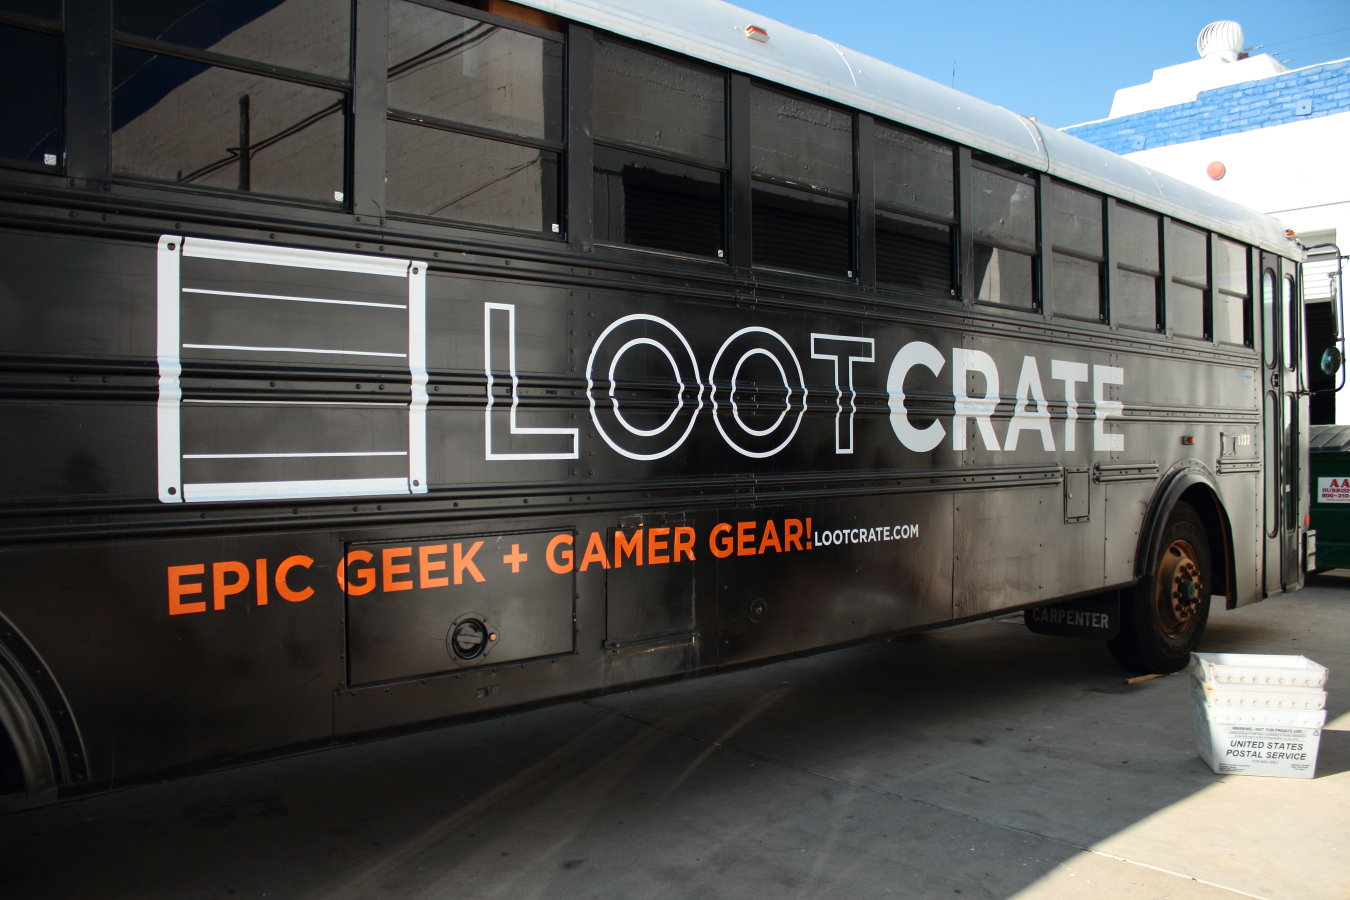 Loot Crate files for Chapter 11 bankruptcy protection - Bent Corner